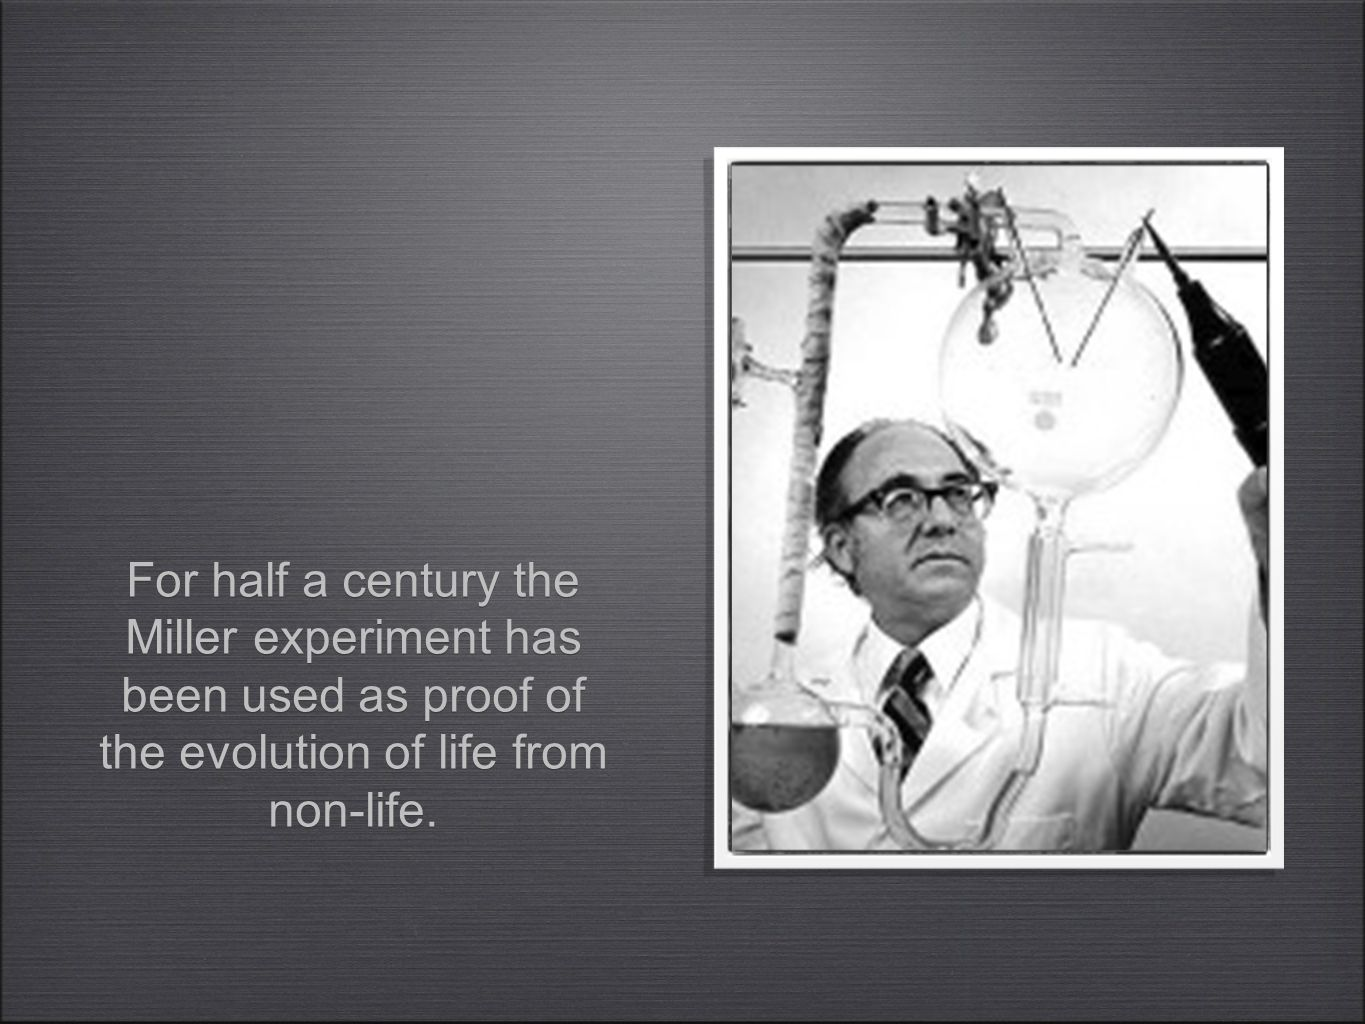 For half a century the Miller experiment has been used as proof of the evolution of life from non-life.